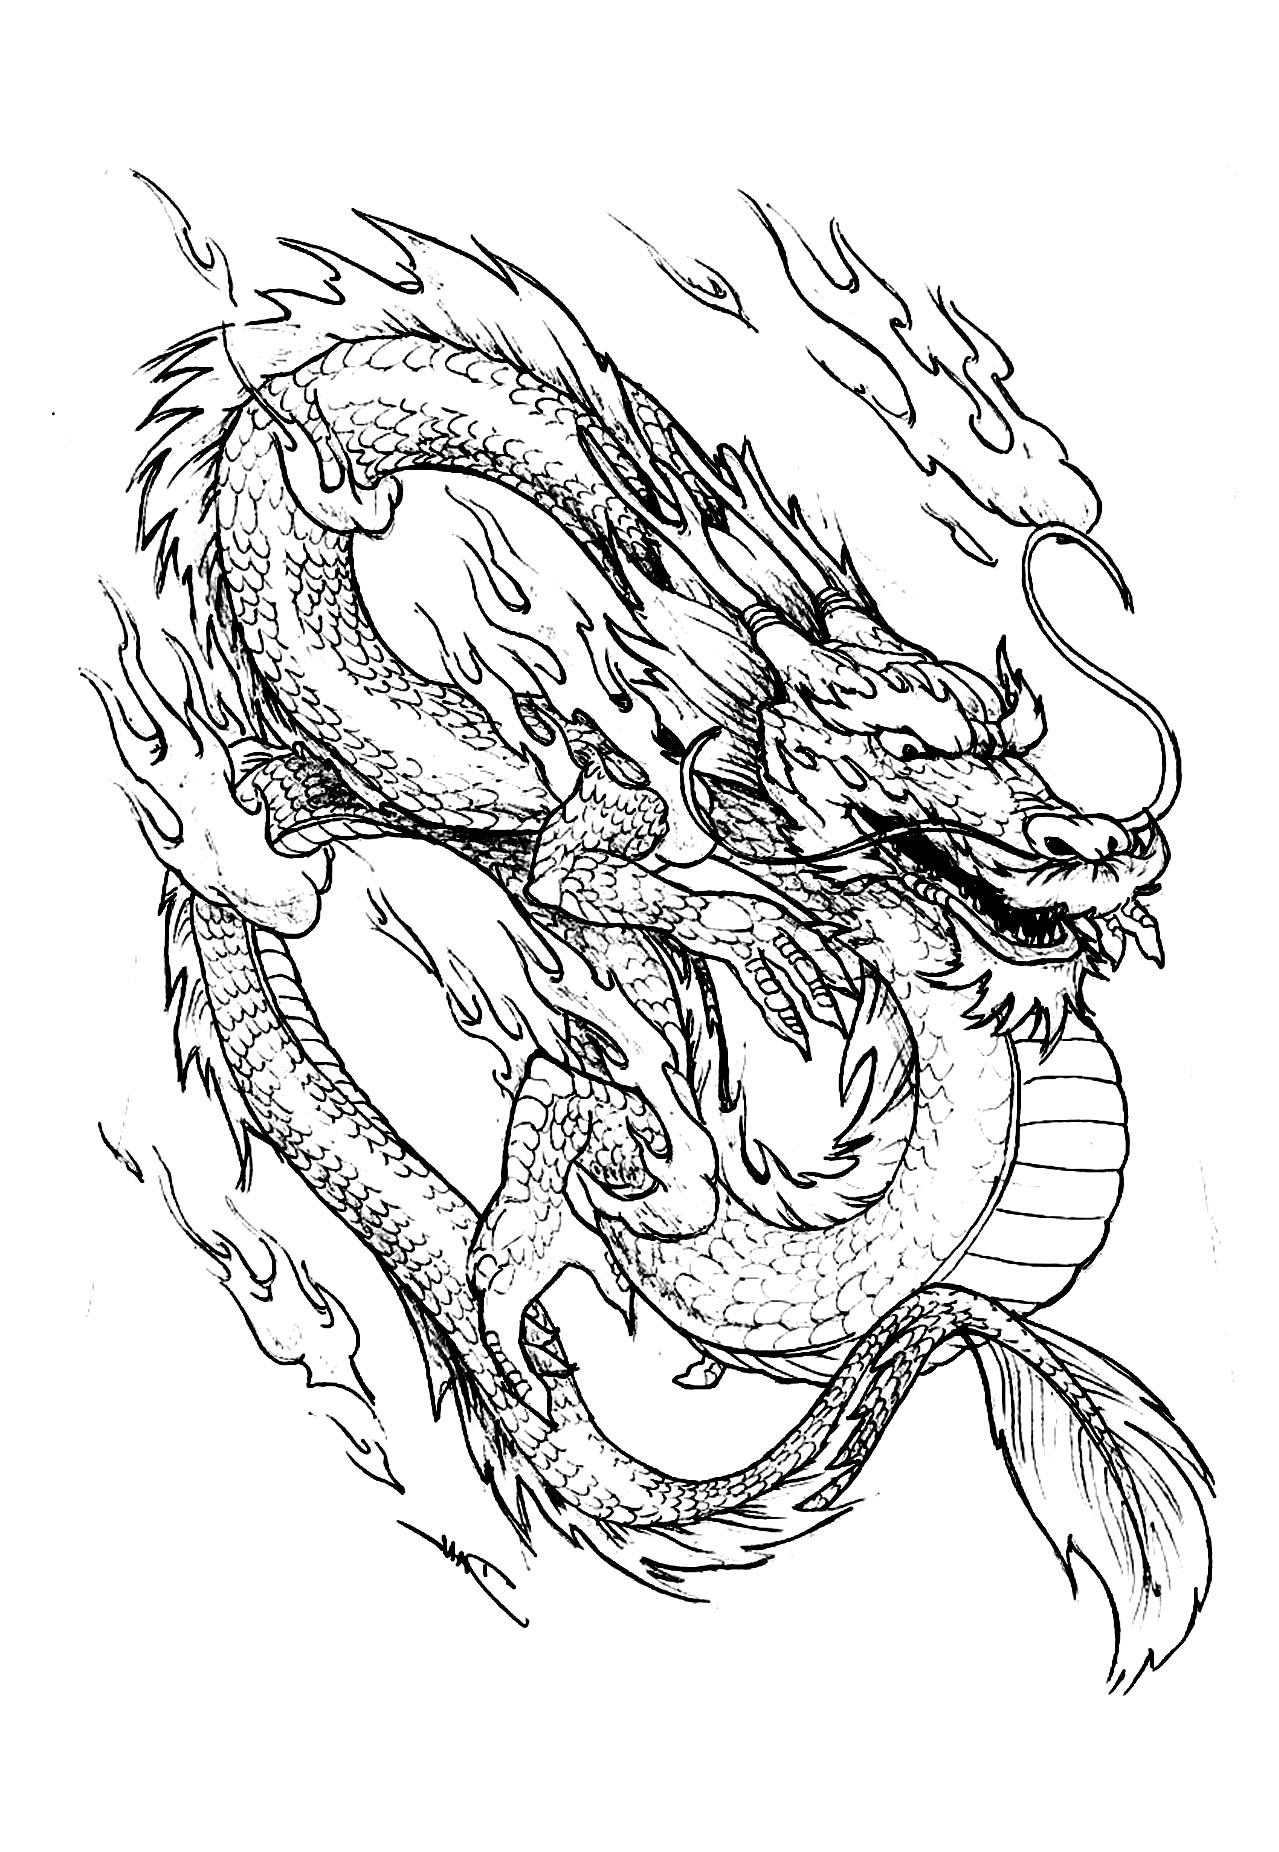 chinese dragon face coloring page - Chinese Dragon Mask Coloring Pages